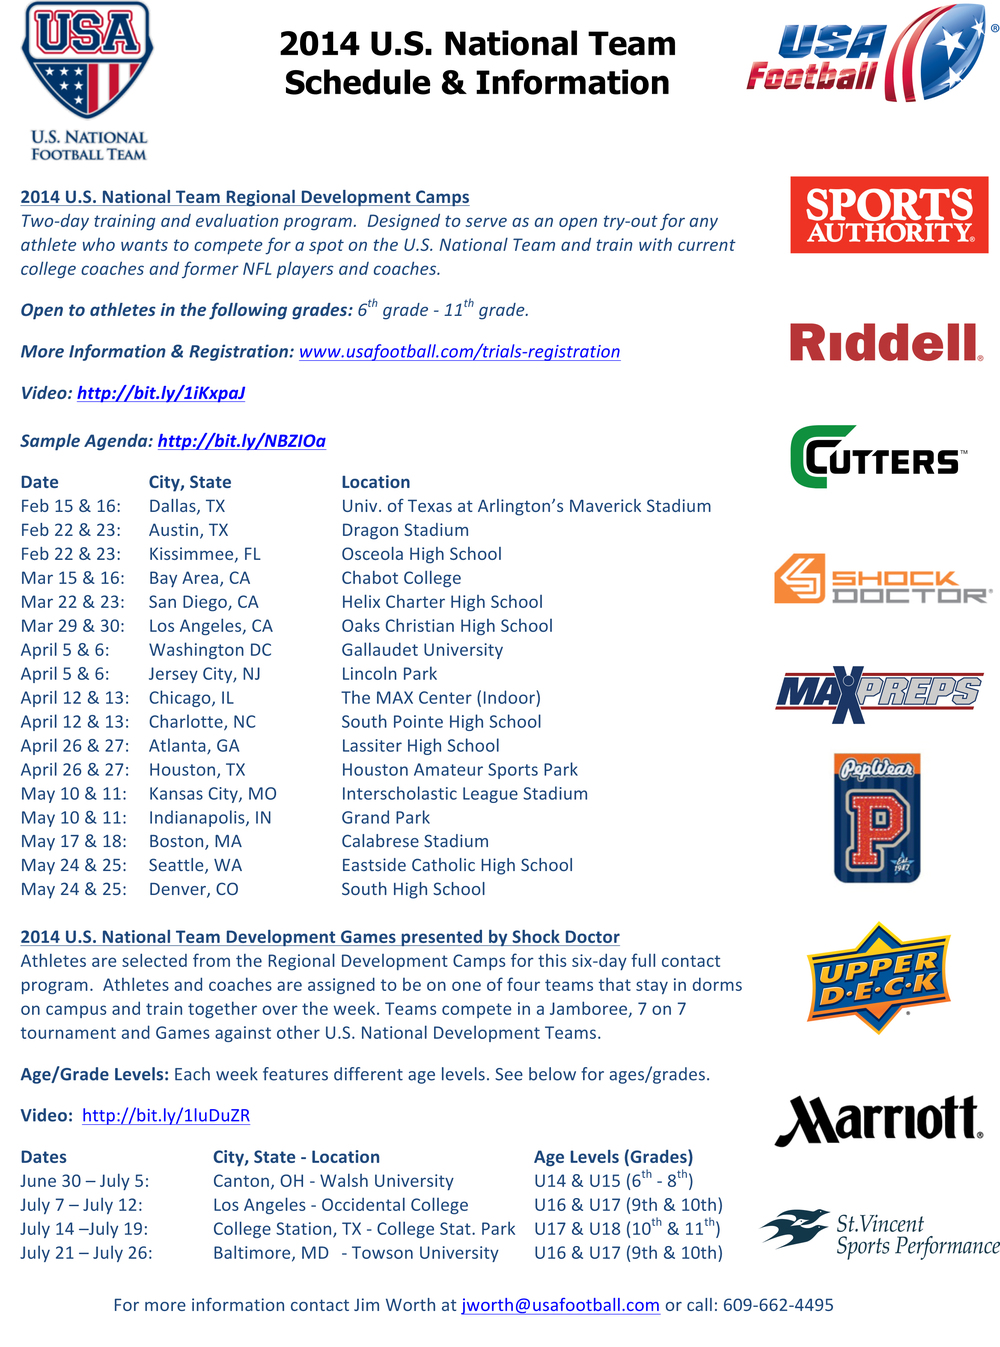 2014_National_Team_Schedule_of_Events-1.jpg